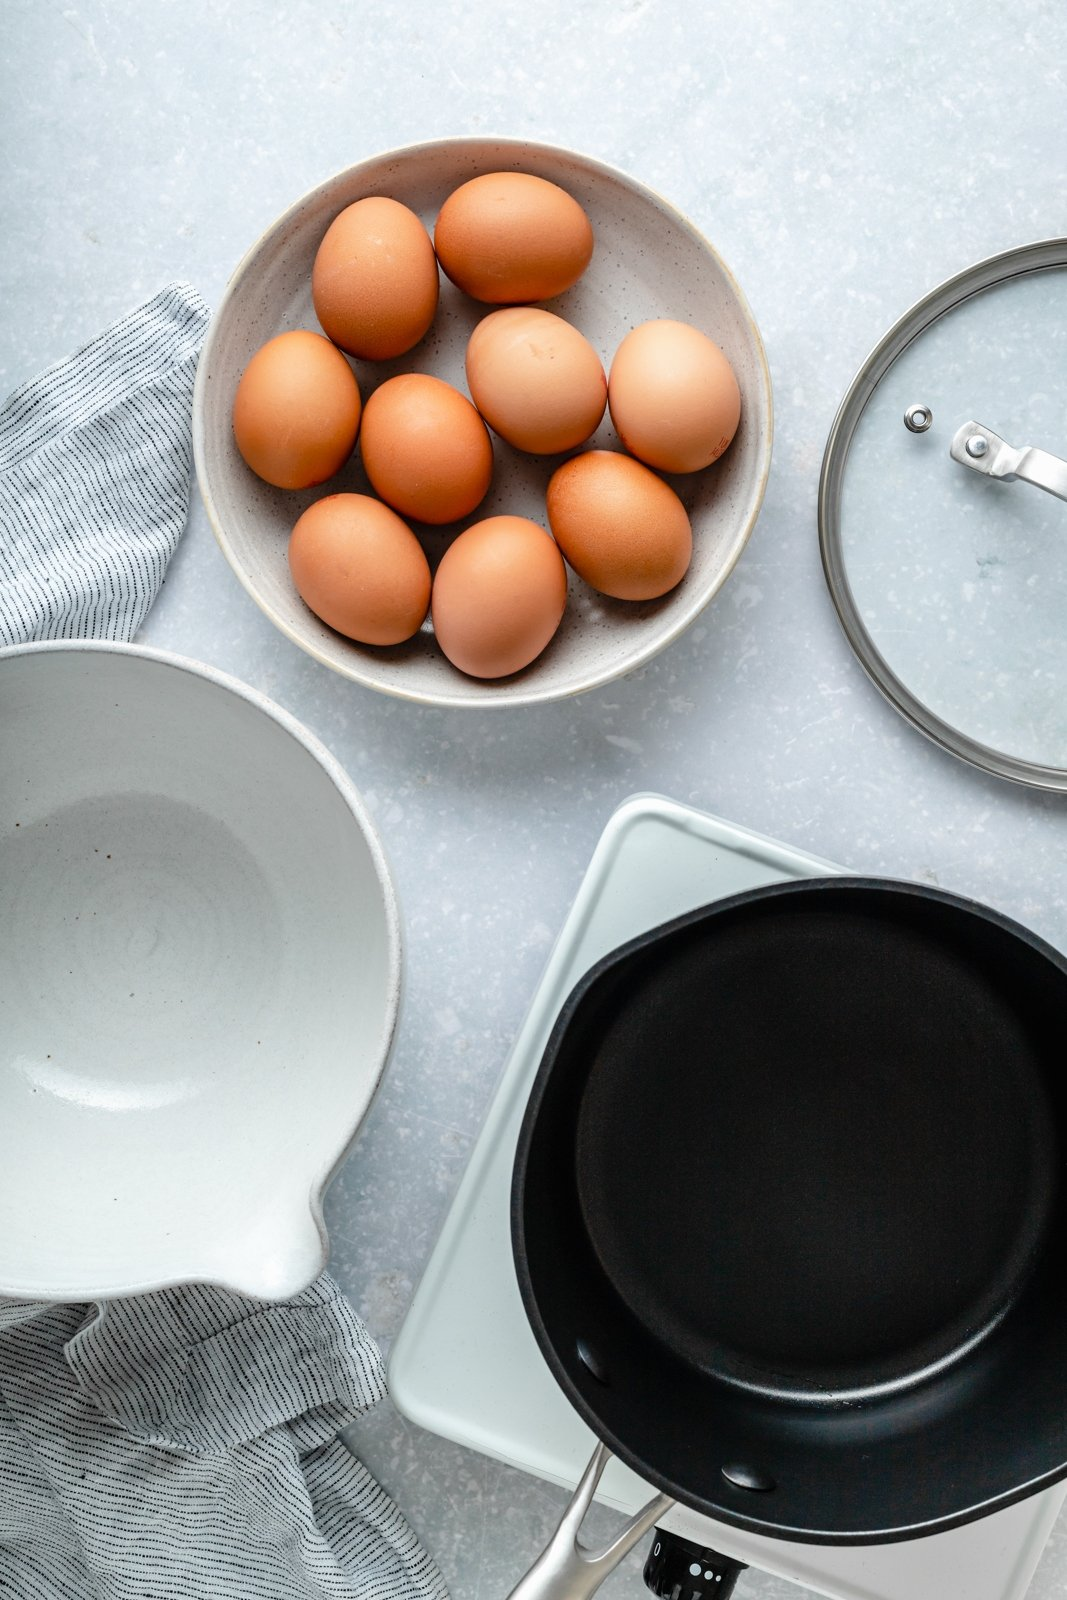 eggs, a bowl and a pot next to each other